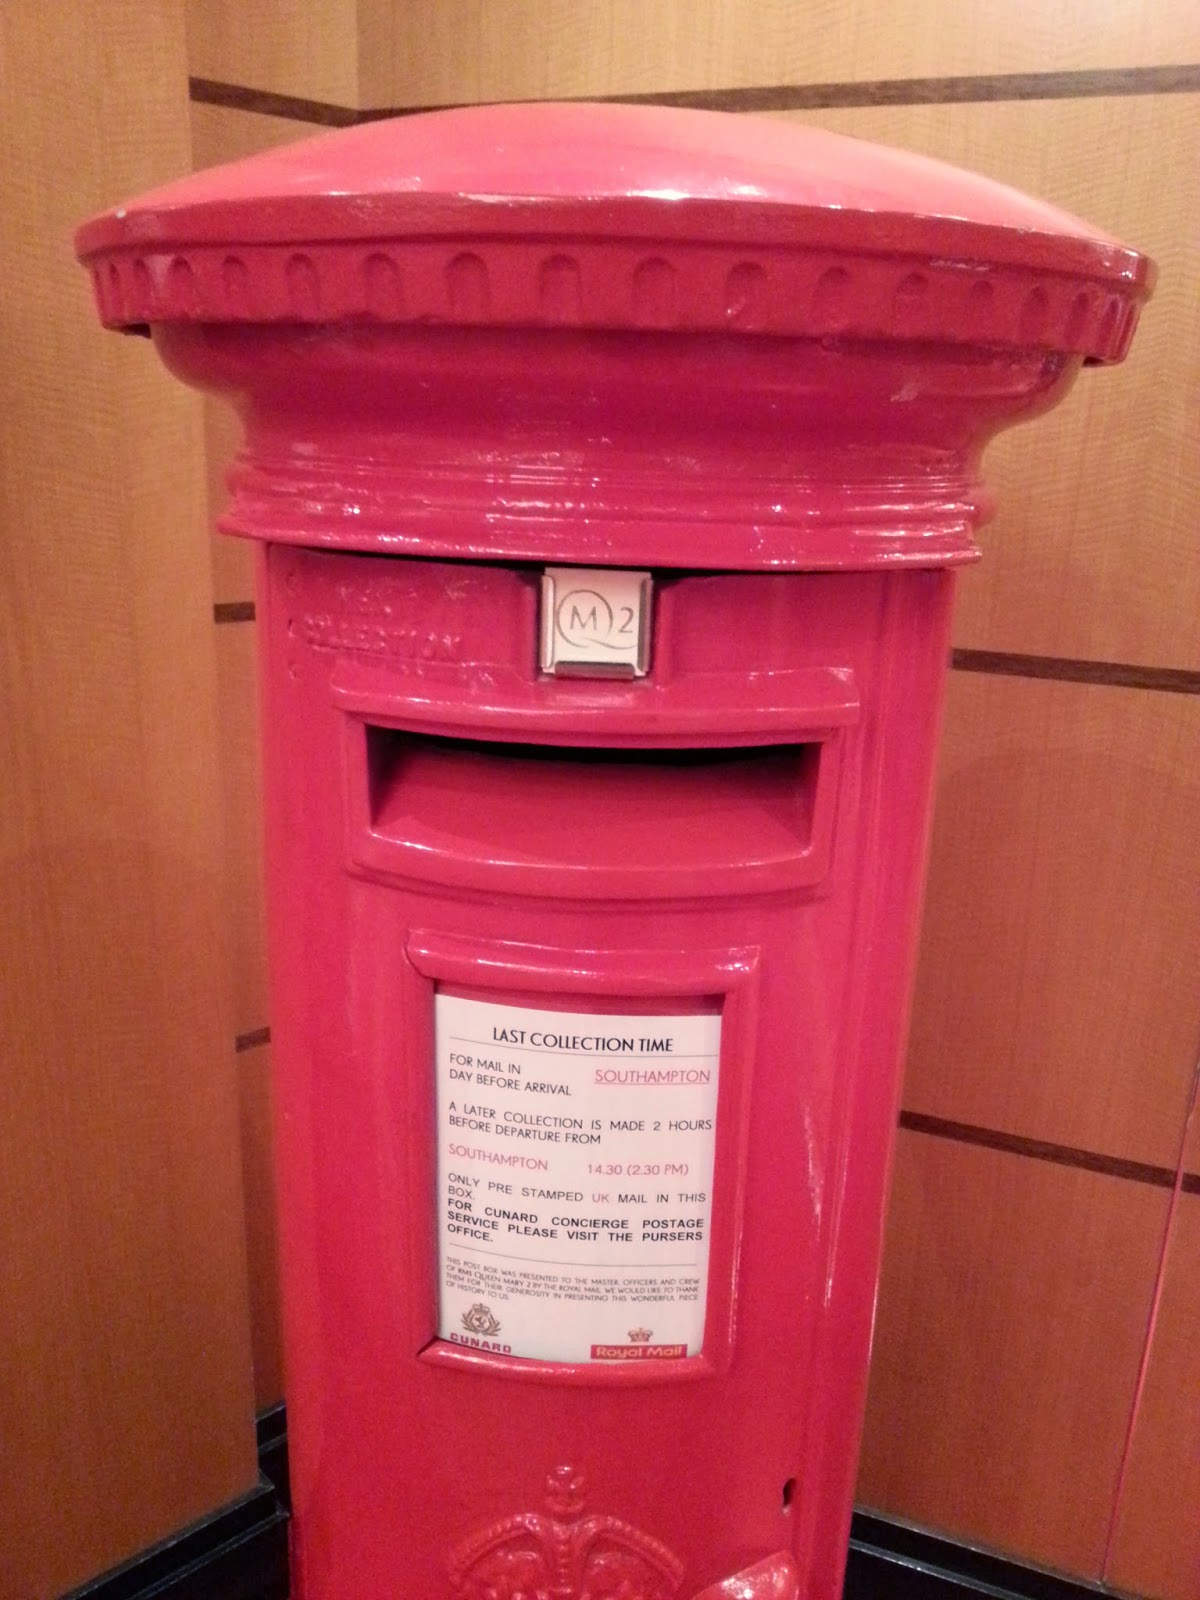 Queen Mary 2 (QM2) - Post Box